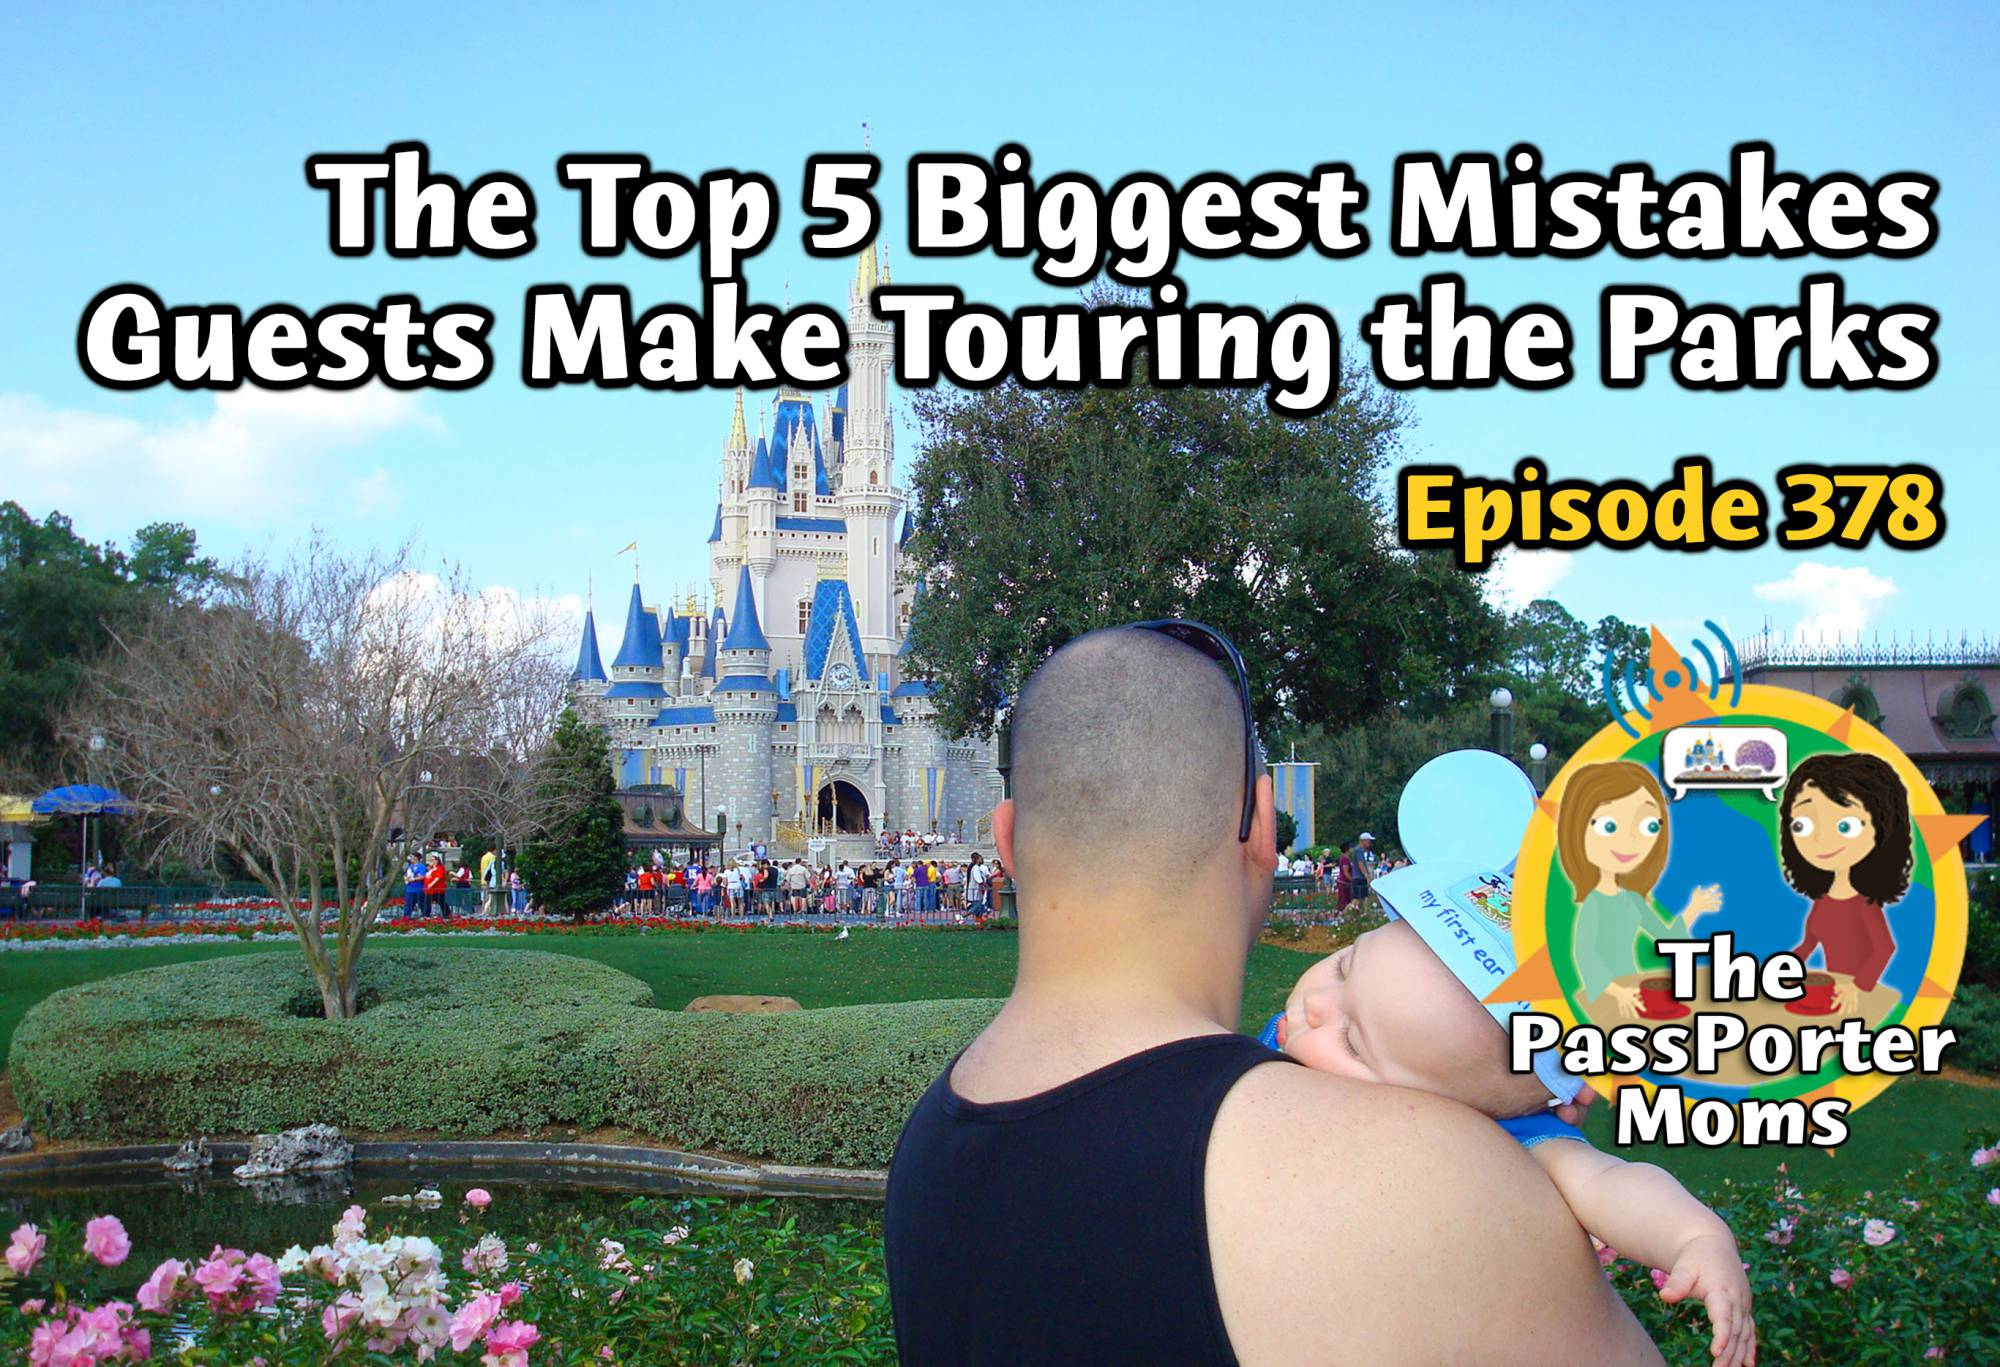 Top 5 Mistakes Guests Make Touring the Parks